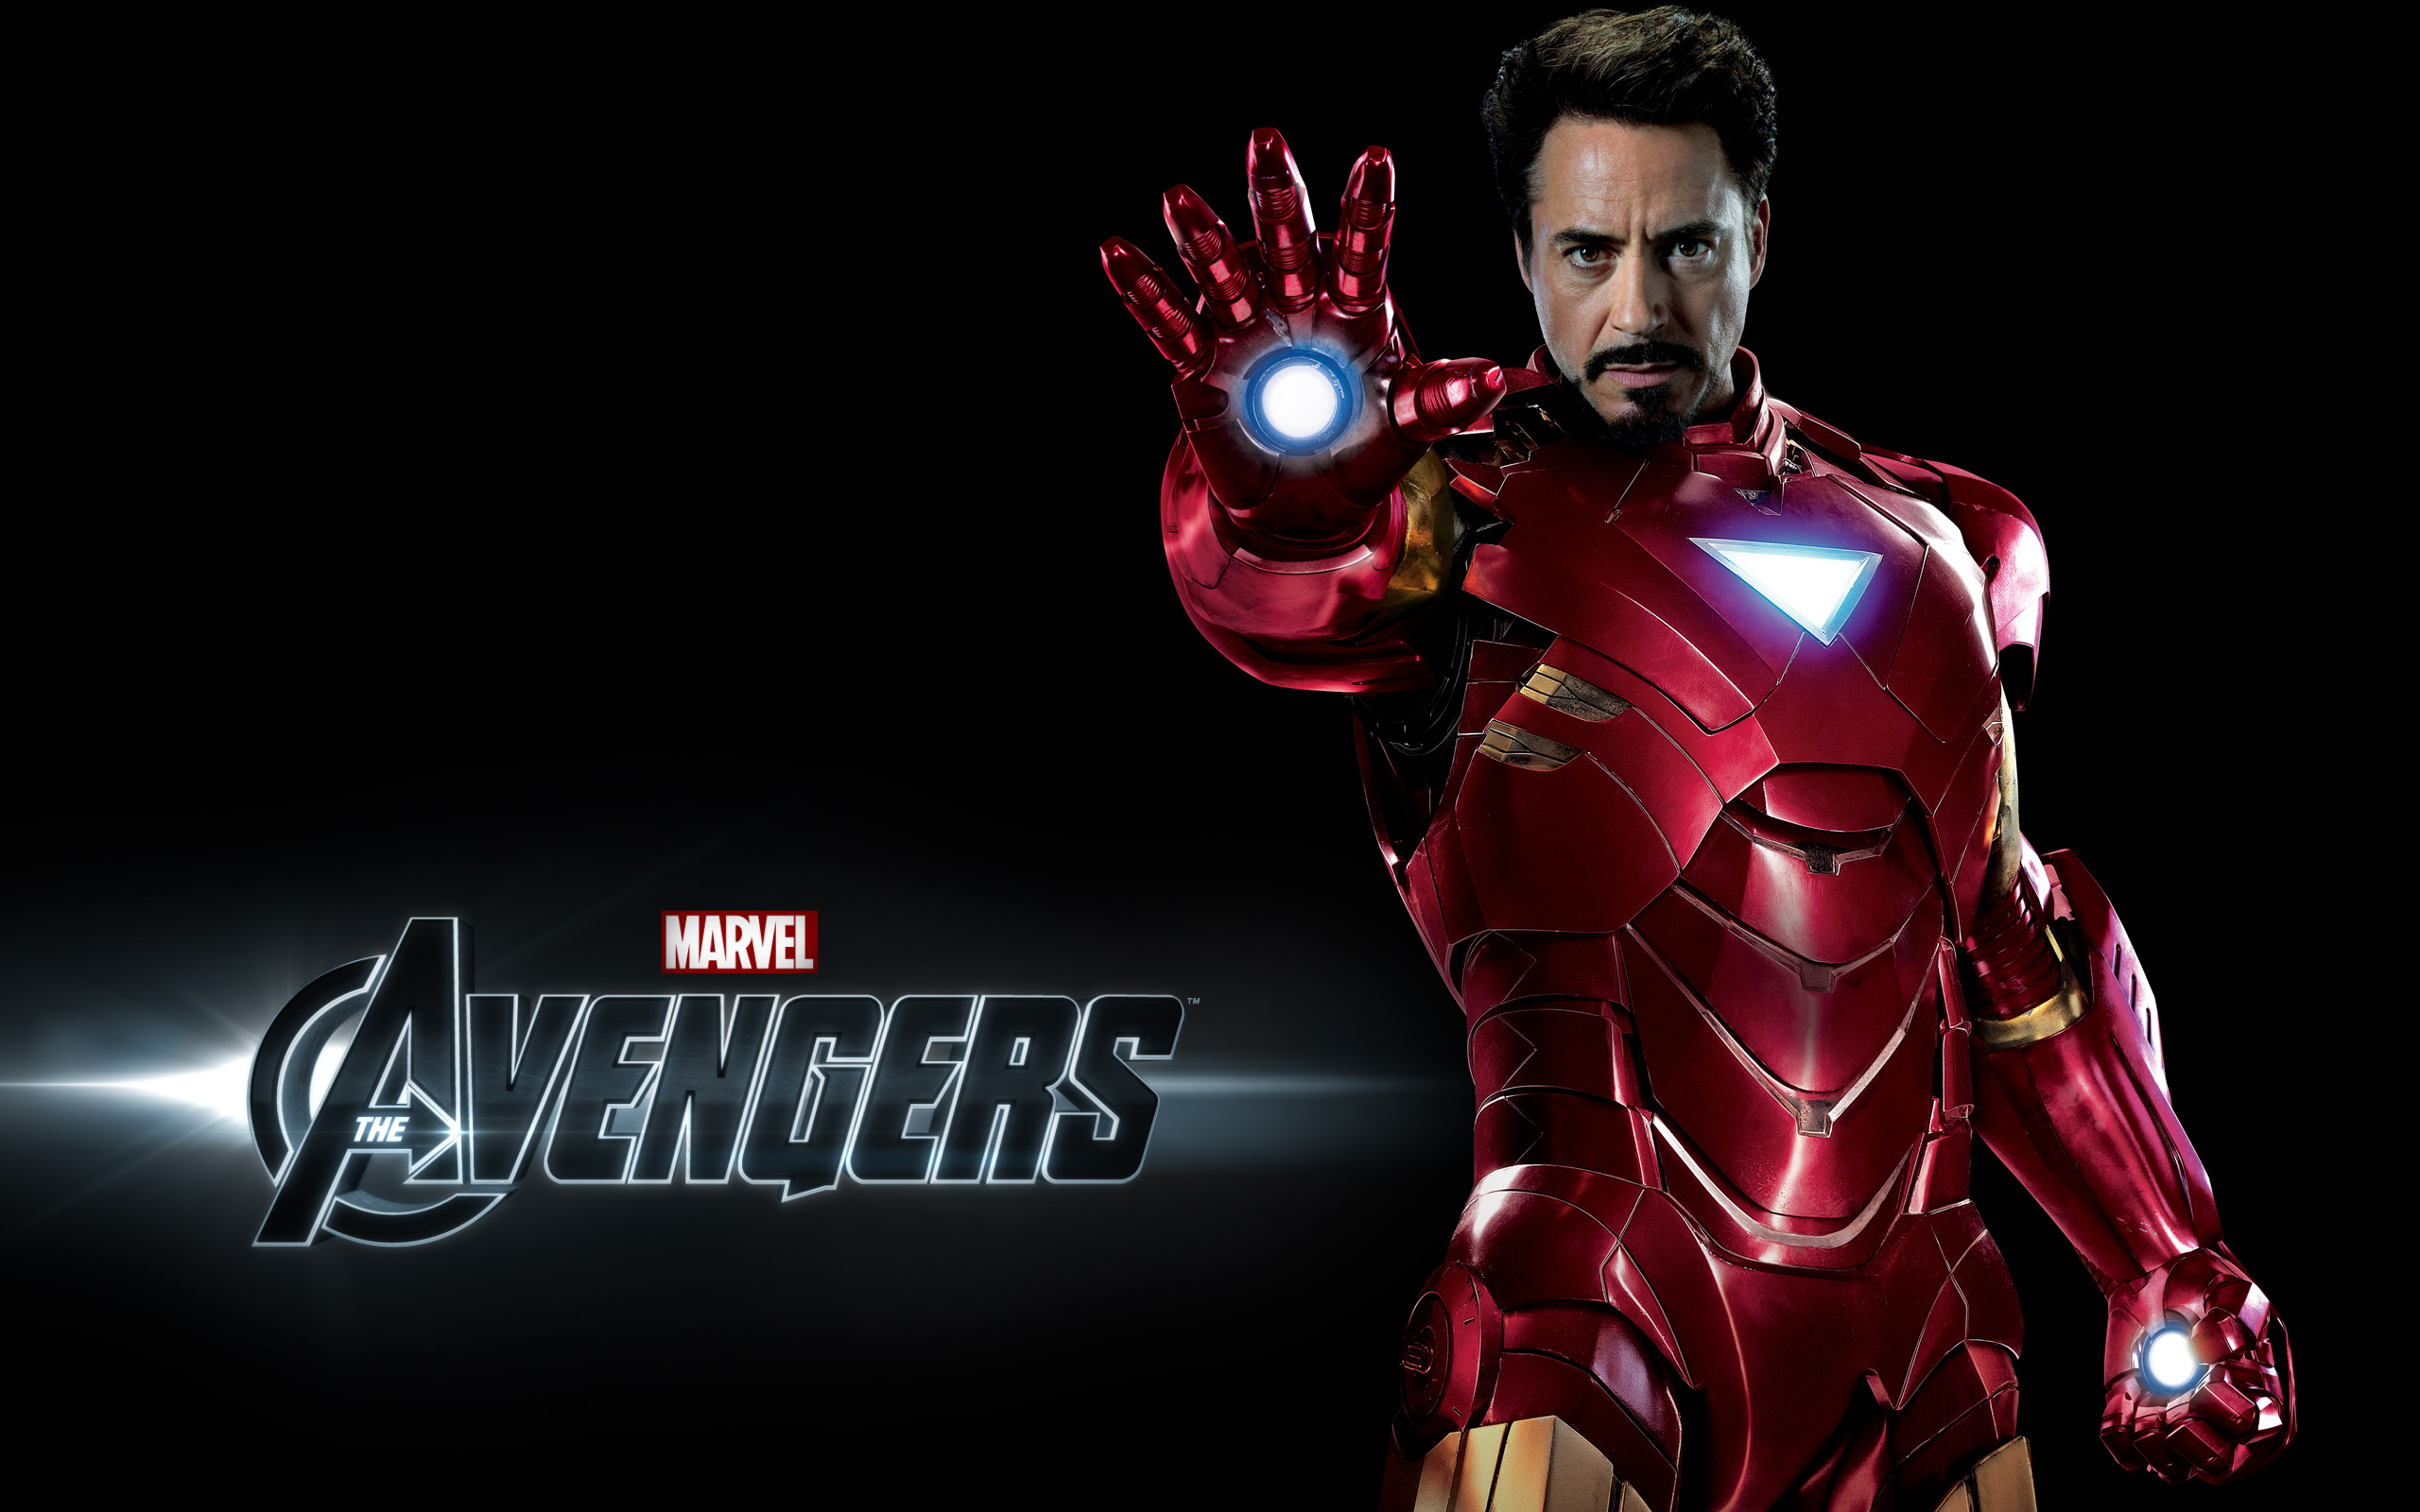 Iron Man in The Avengers